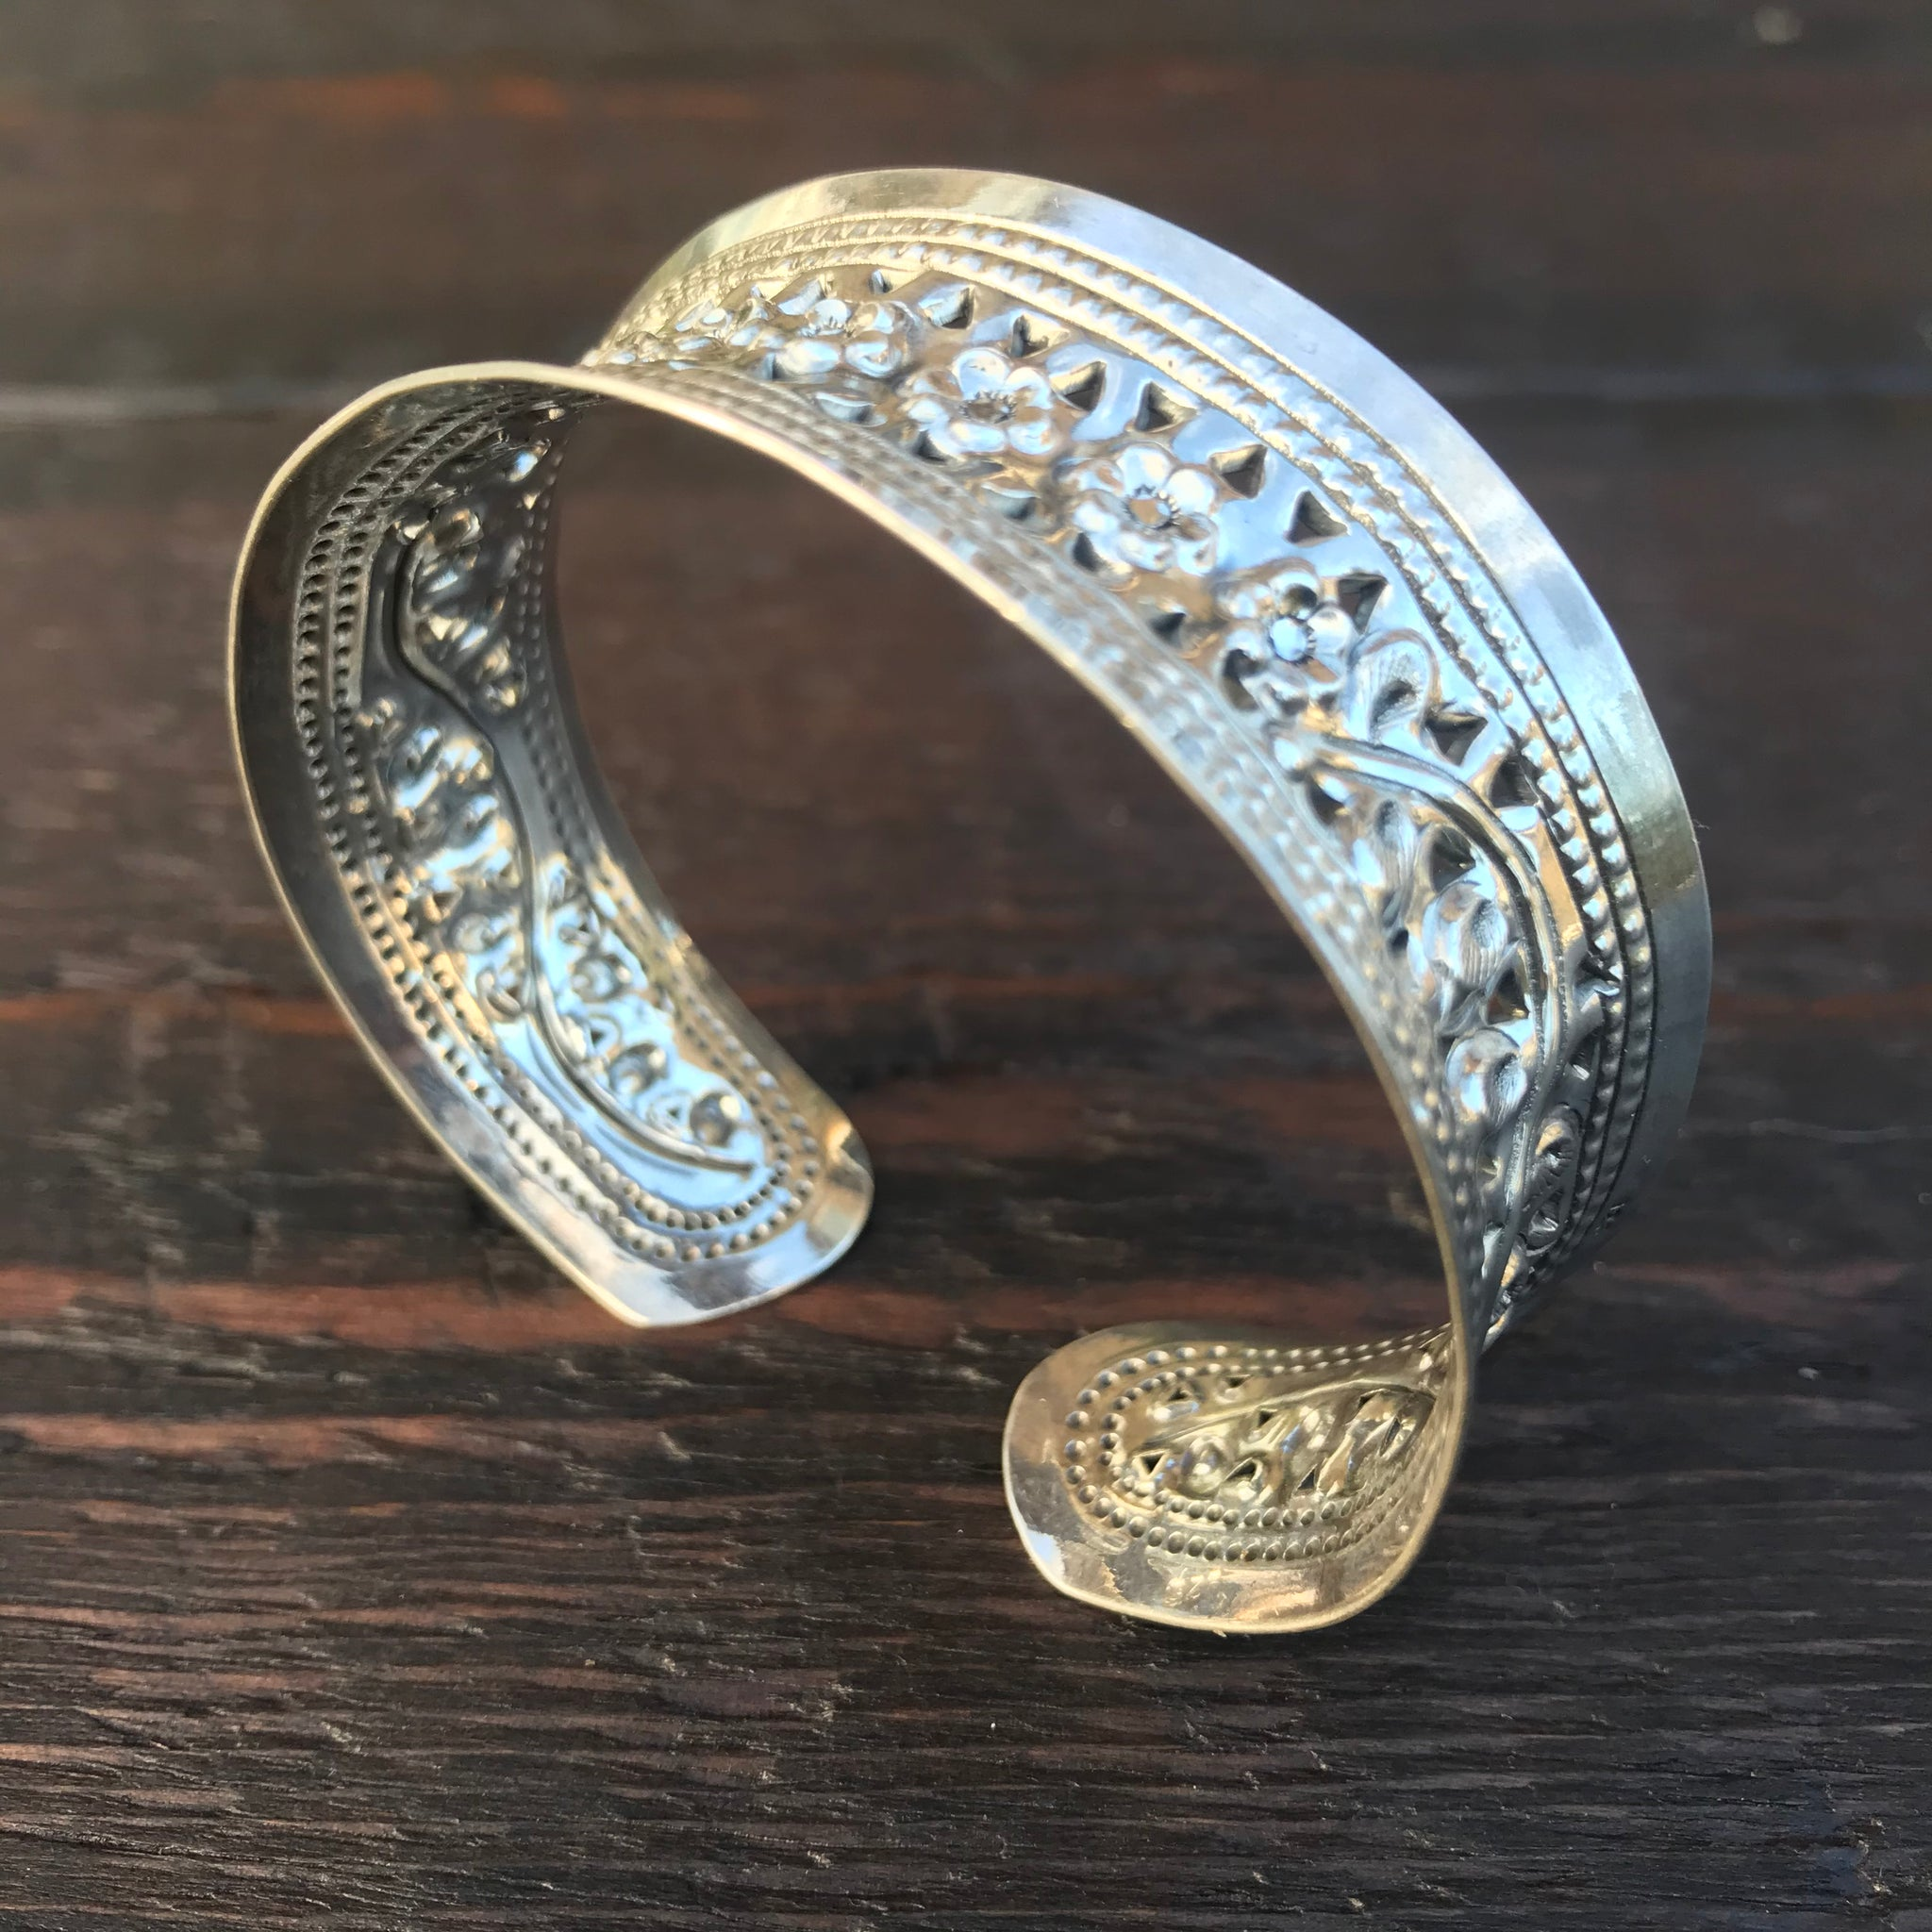 'Karen Hill Tribe' Concave Flower Sterling Silver Cuff Bangle